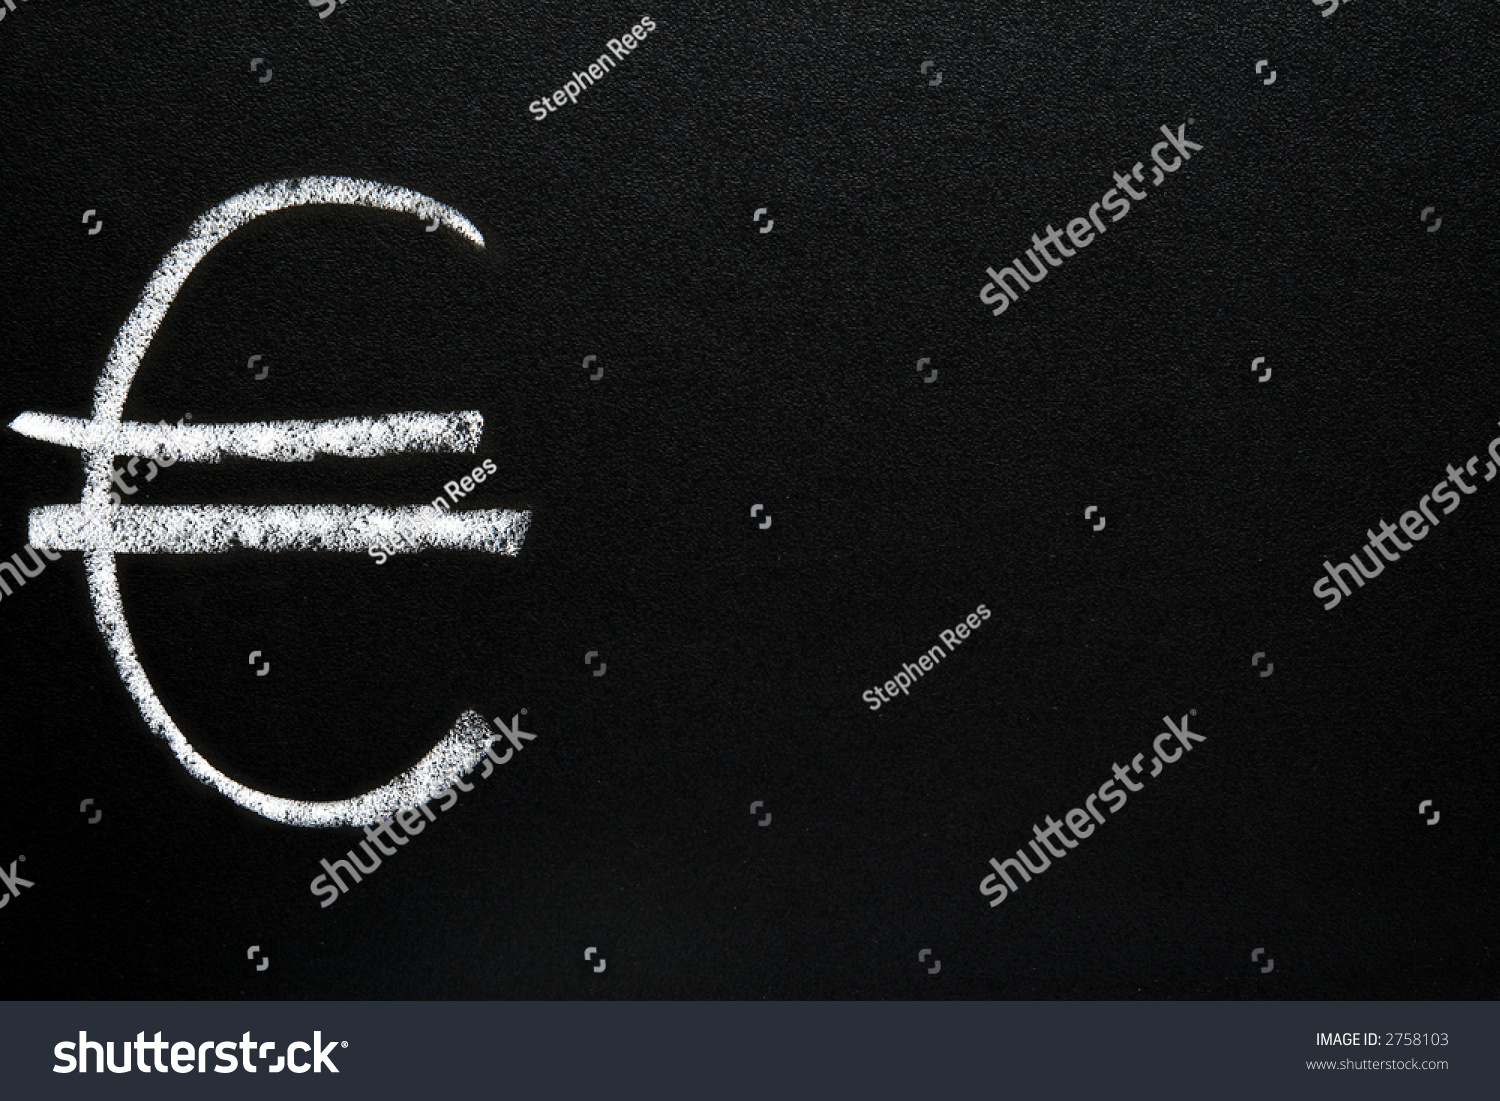 Euro currency symbol written on blackboard stock illustration the euro currency symbol written on a blackboard with space for text buycottarizona Choice Image